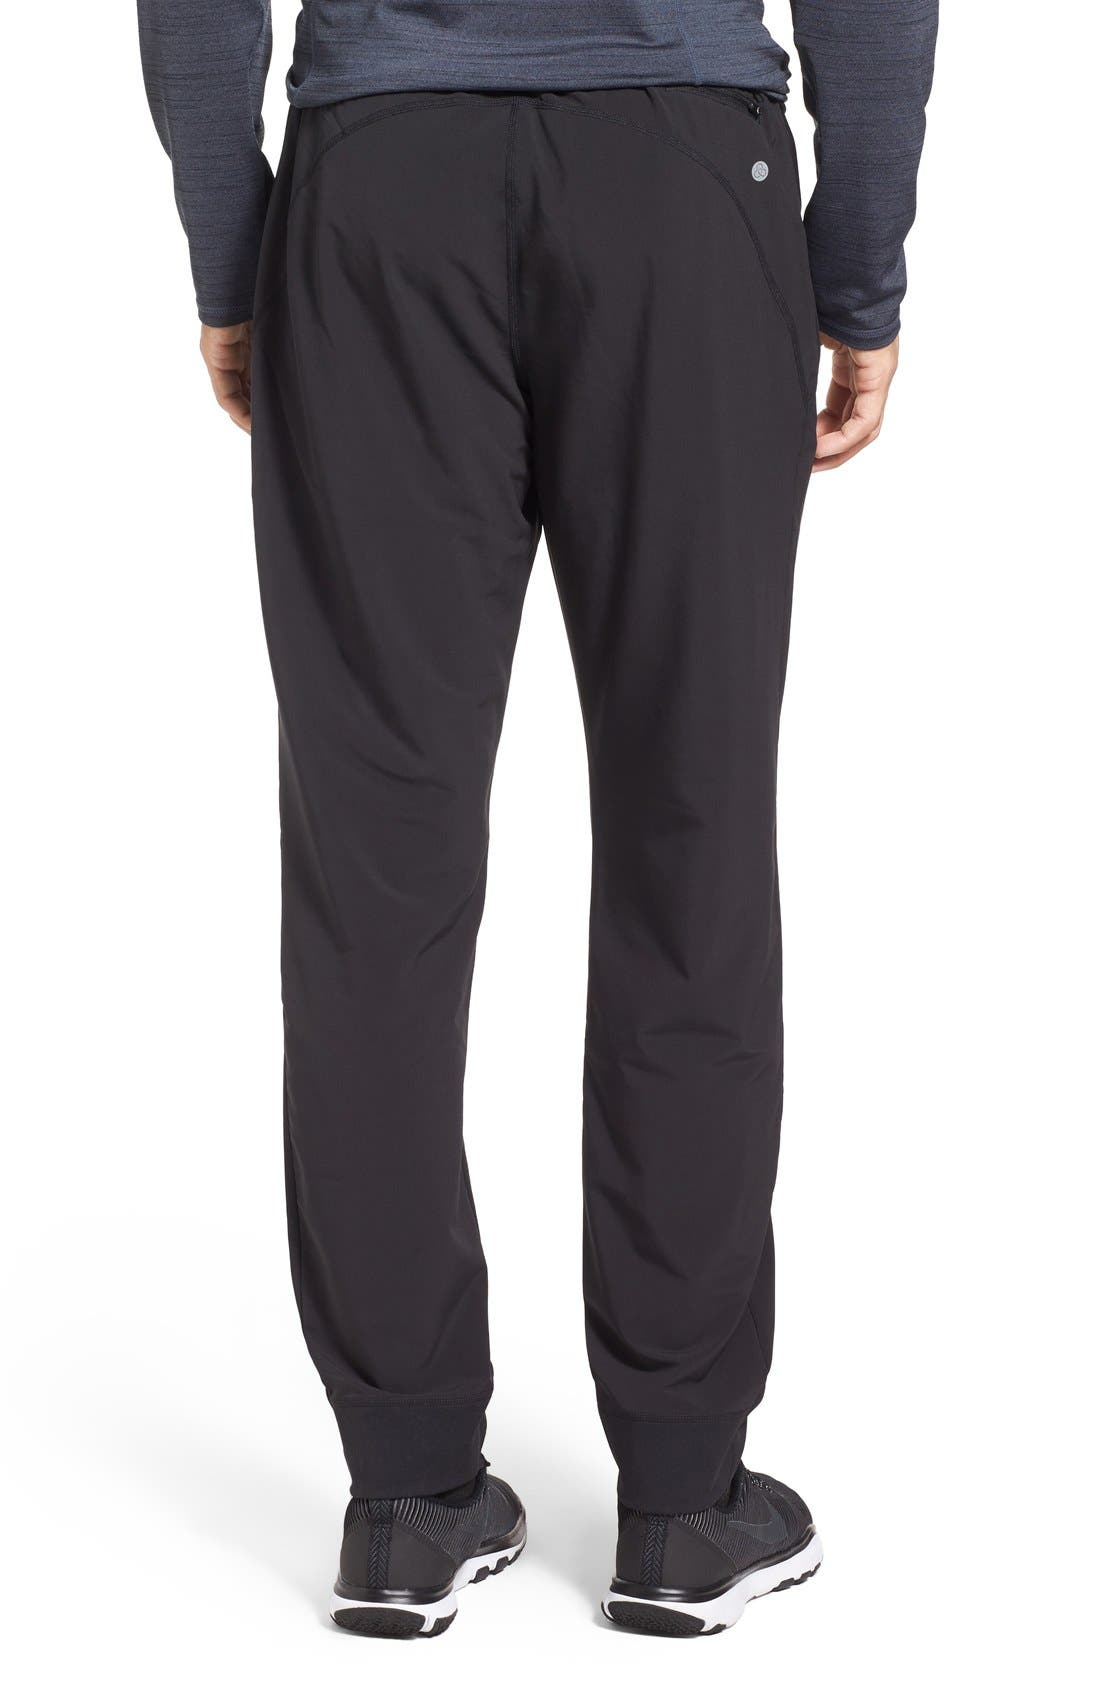 Graphite Tapered Athletic Pants,                             Alternate thumbnail 4, color,                             001